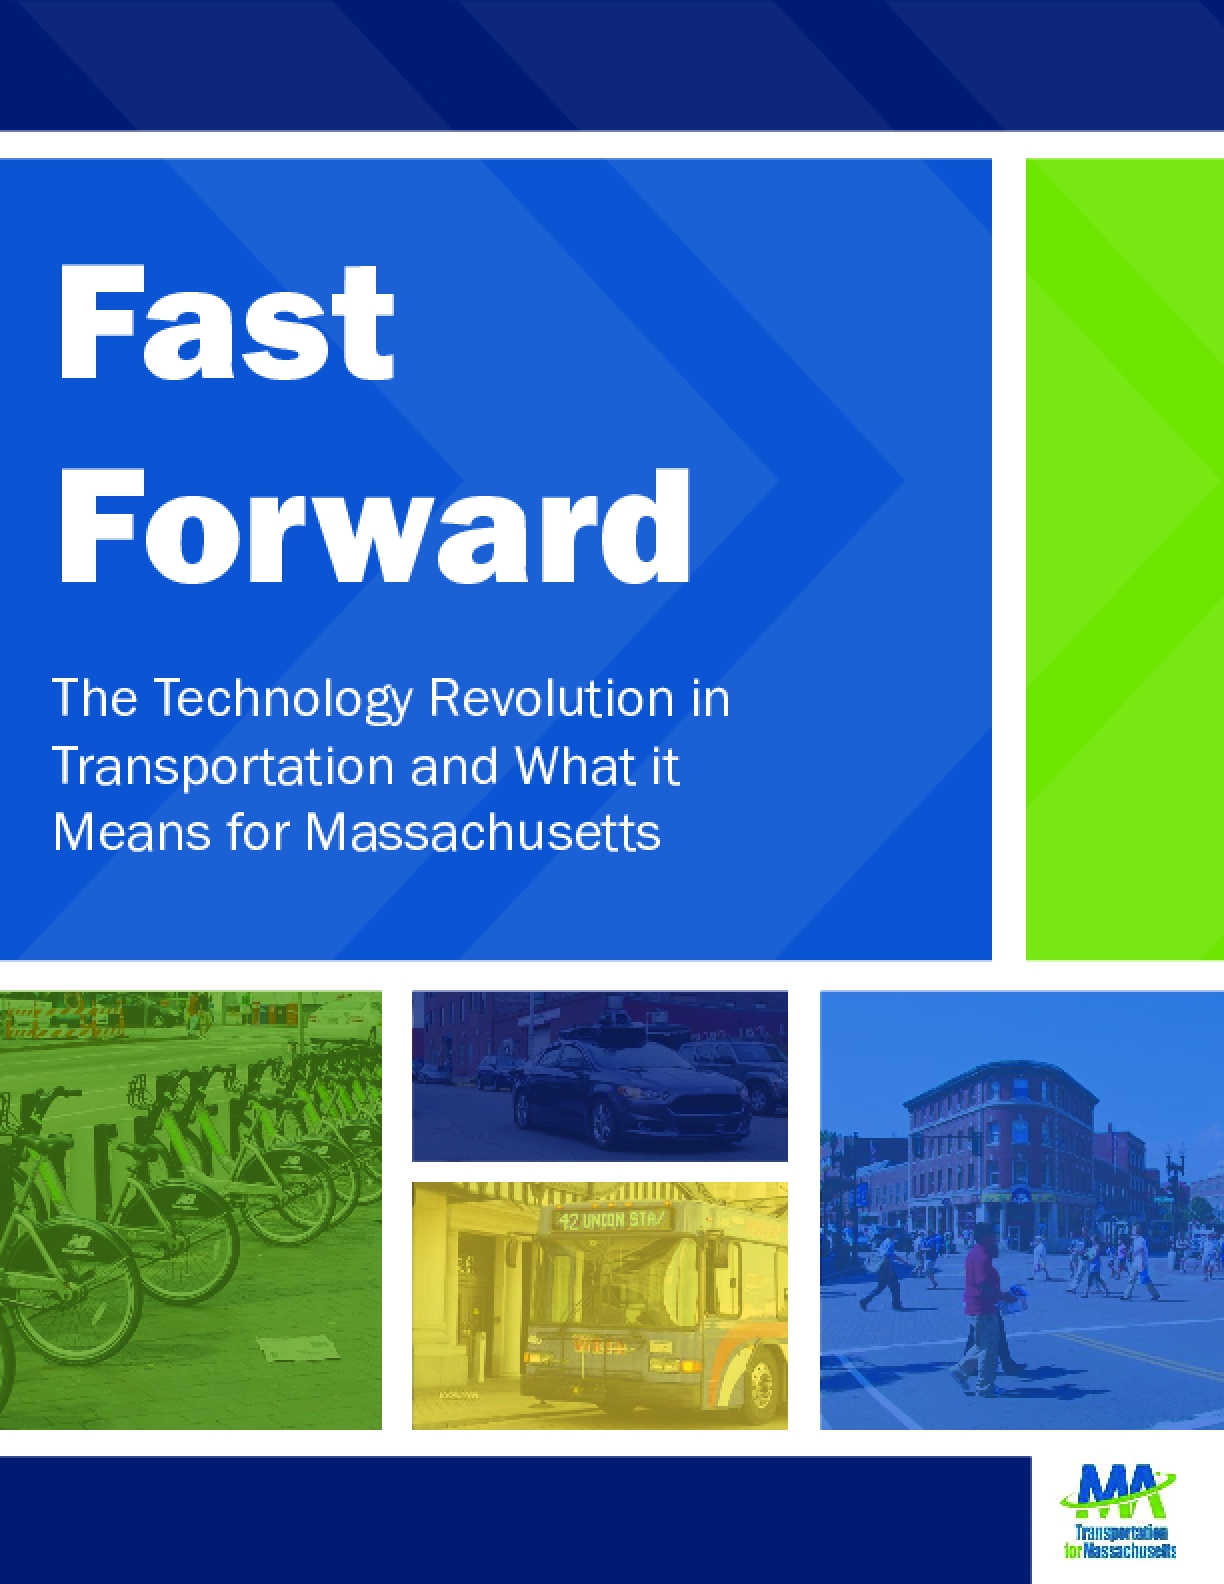 Fast Forward: The Technology Revolution in Transportation and What it Means for Massachusetts